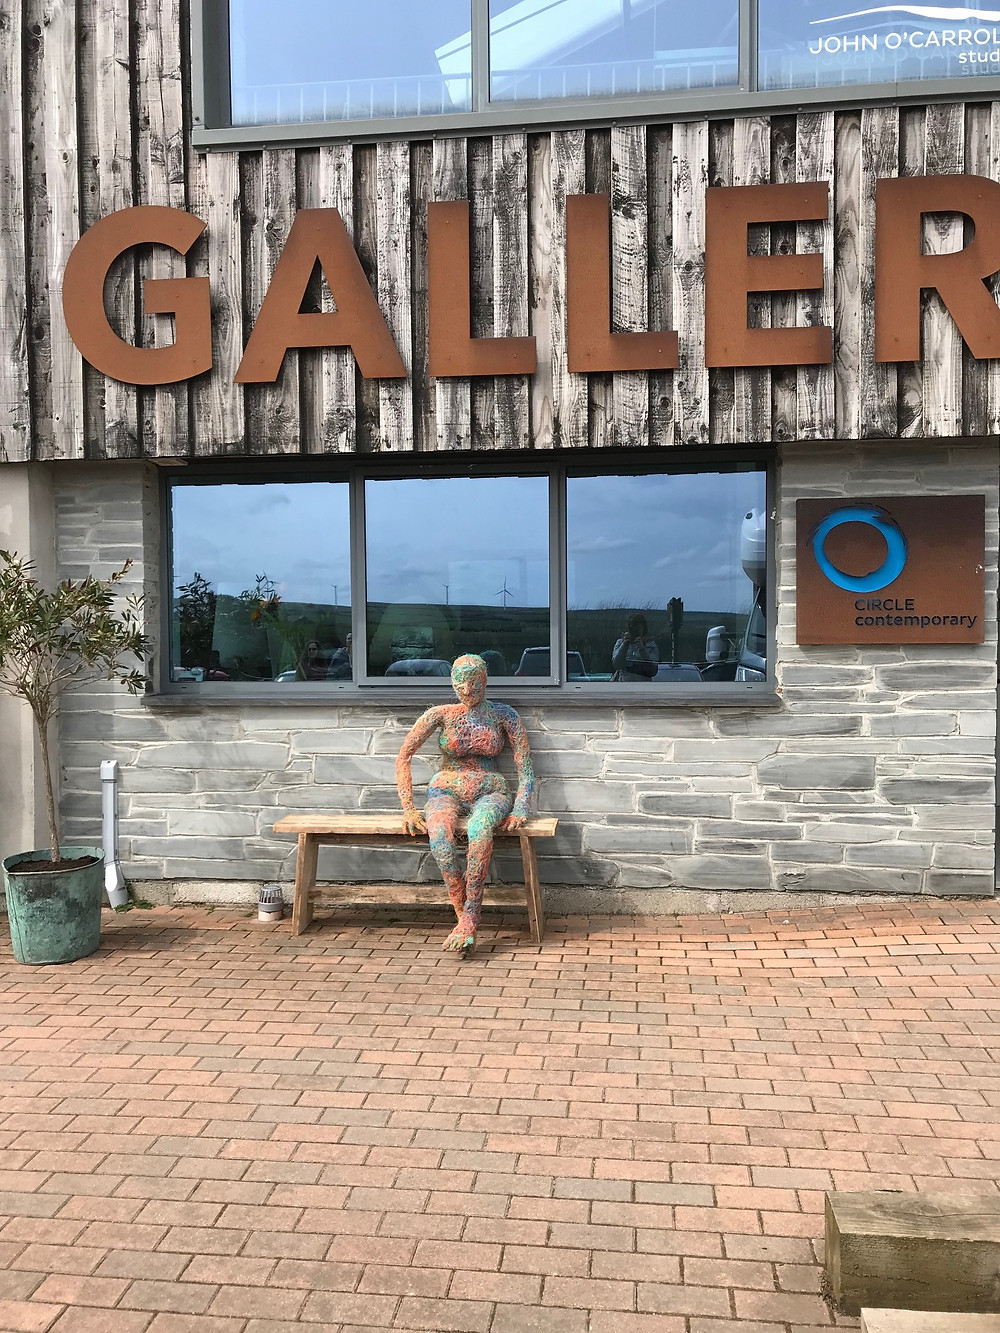 A'net visits the circle gallery